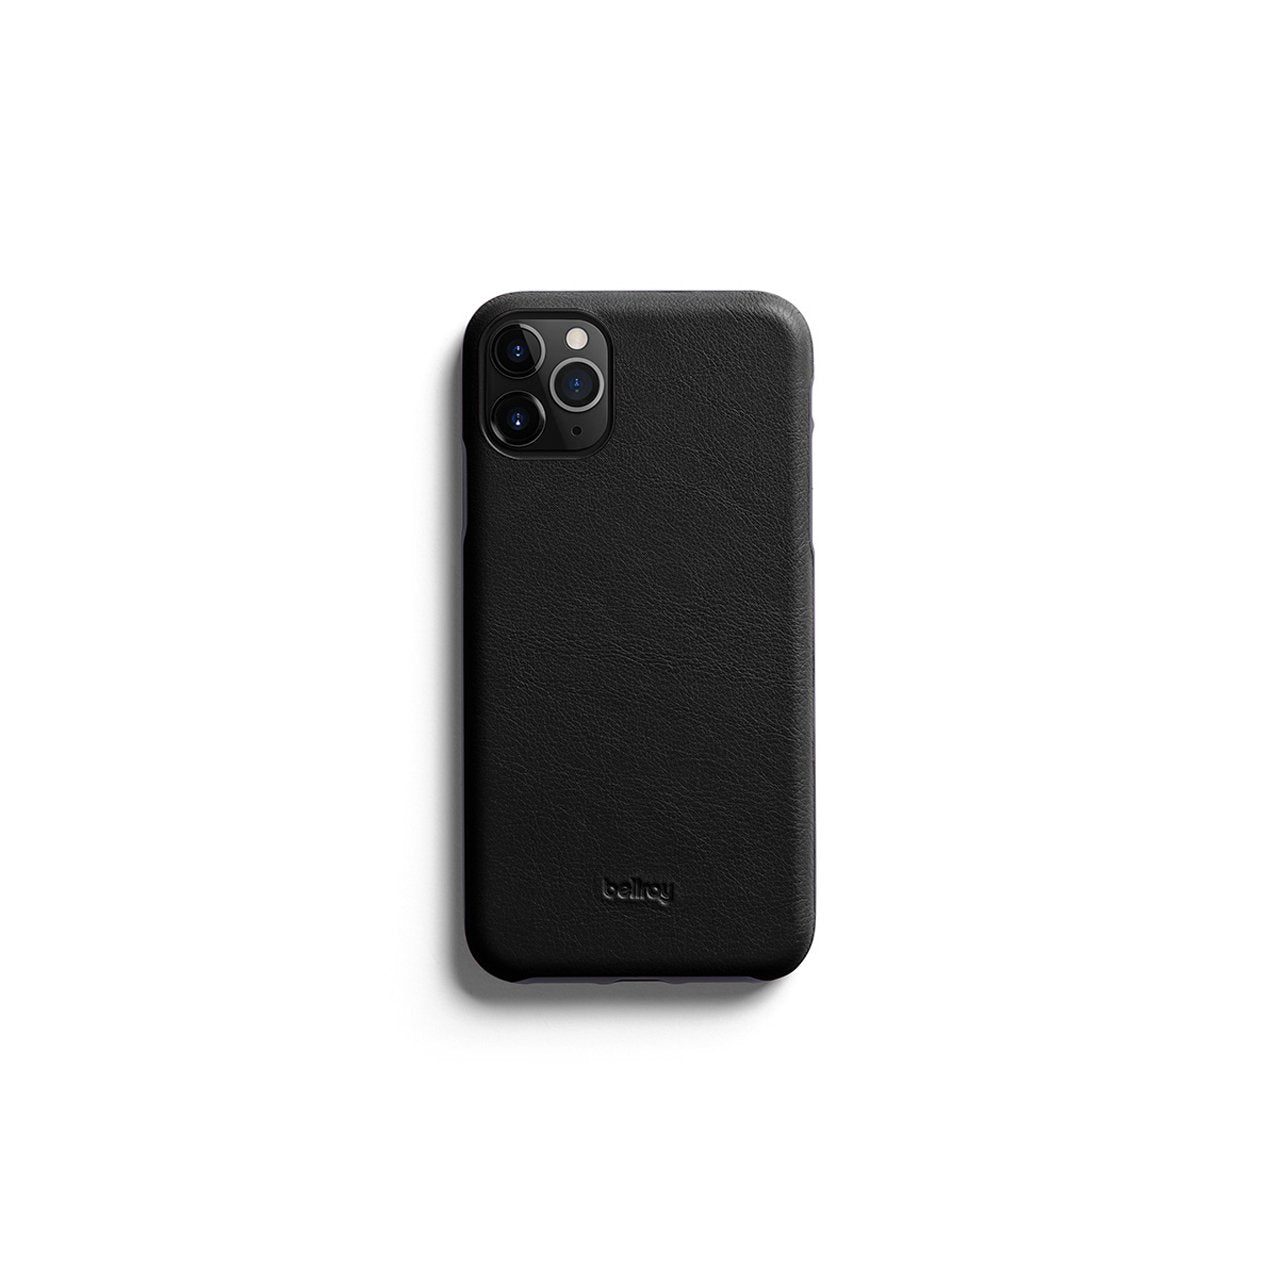 "Bellroy - Phone Case - iPhone 11 Pro (5.8"") - Black"